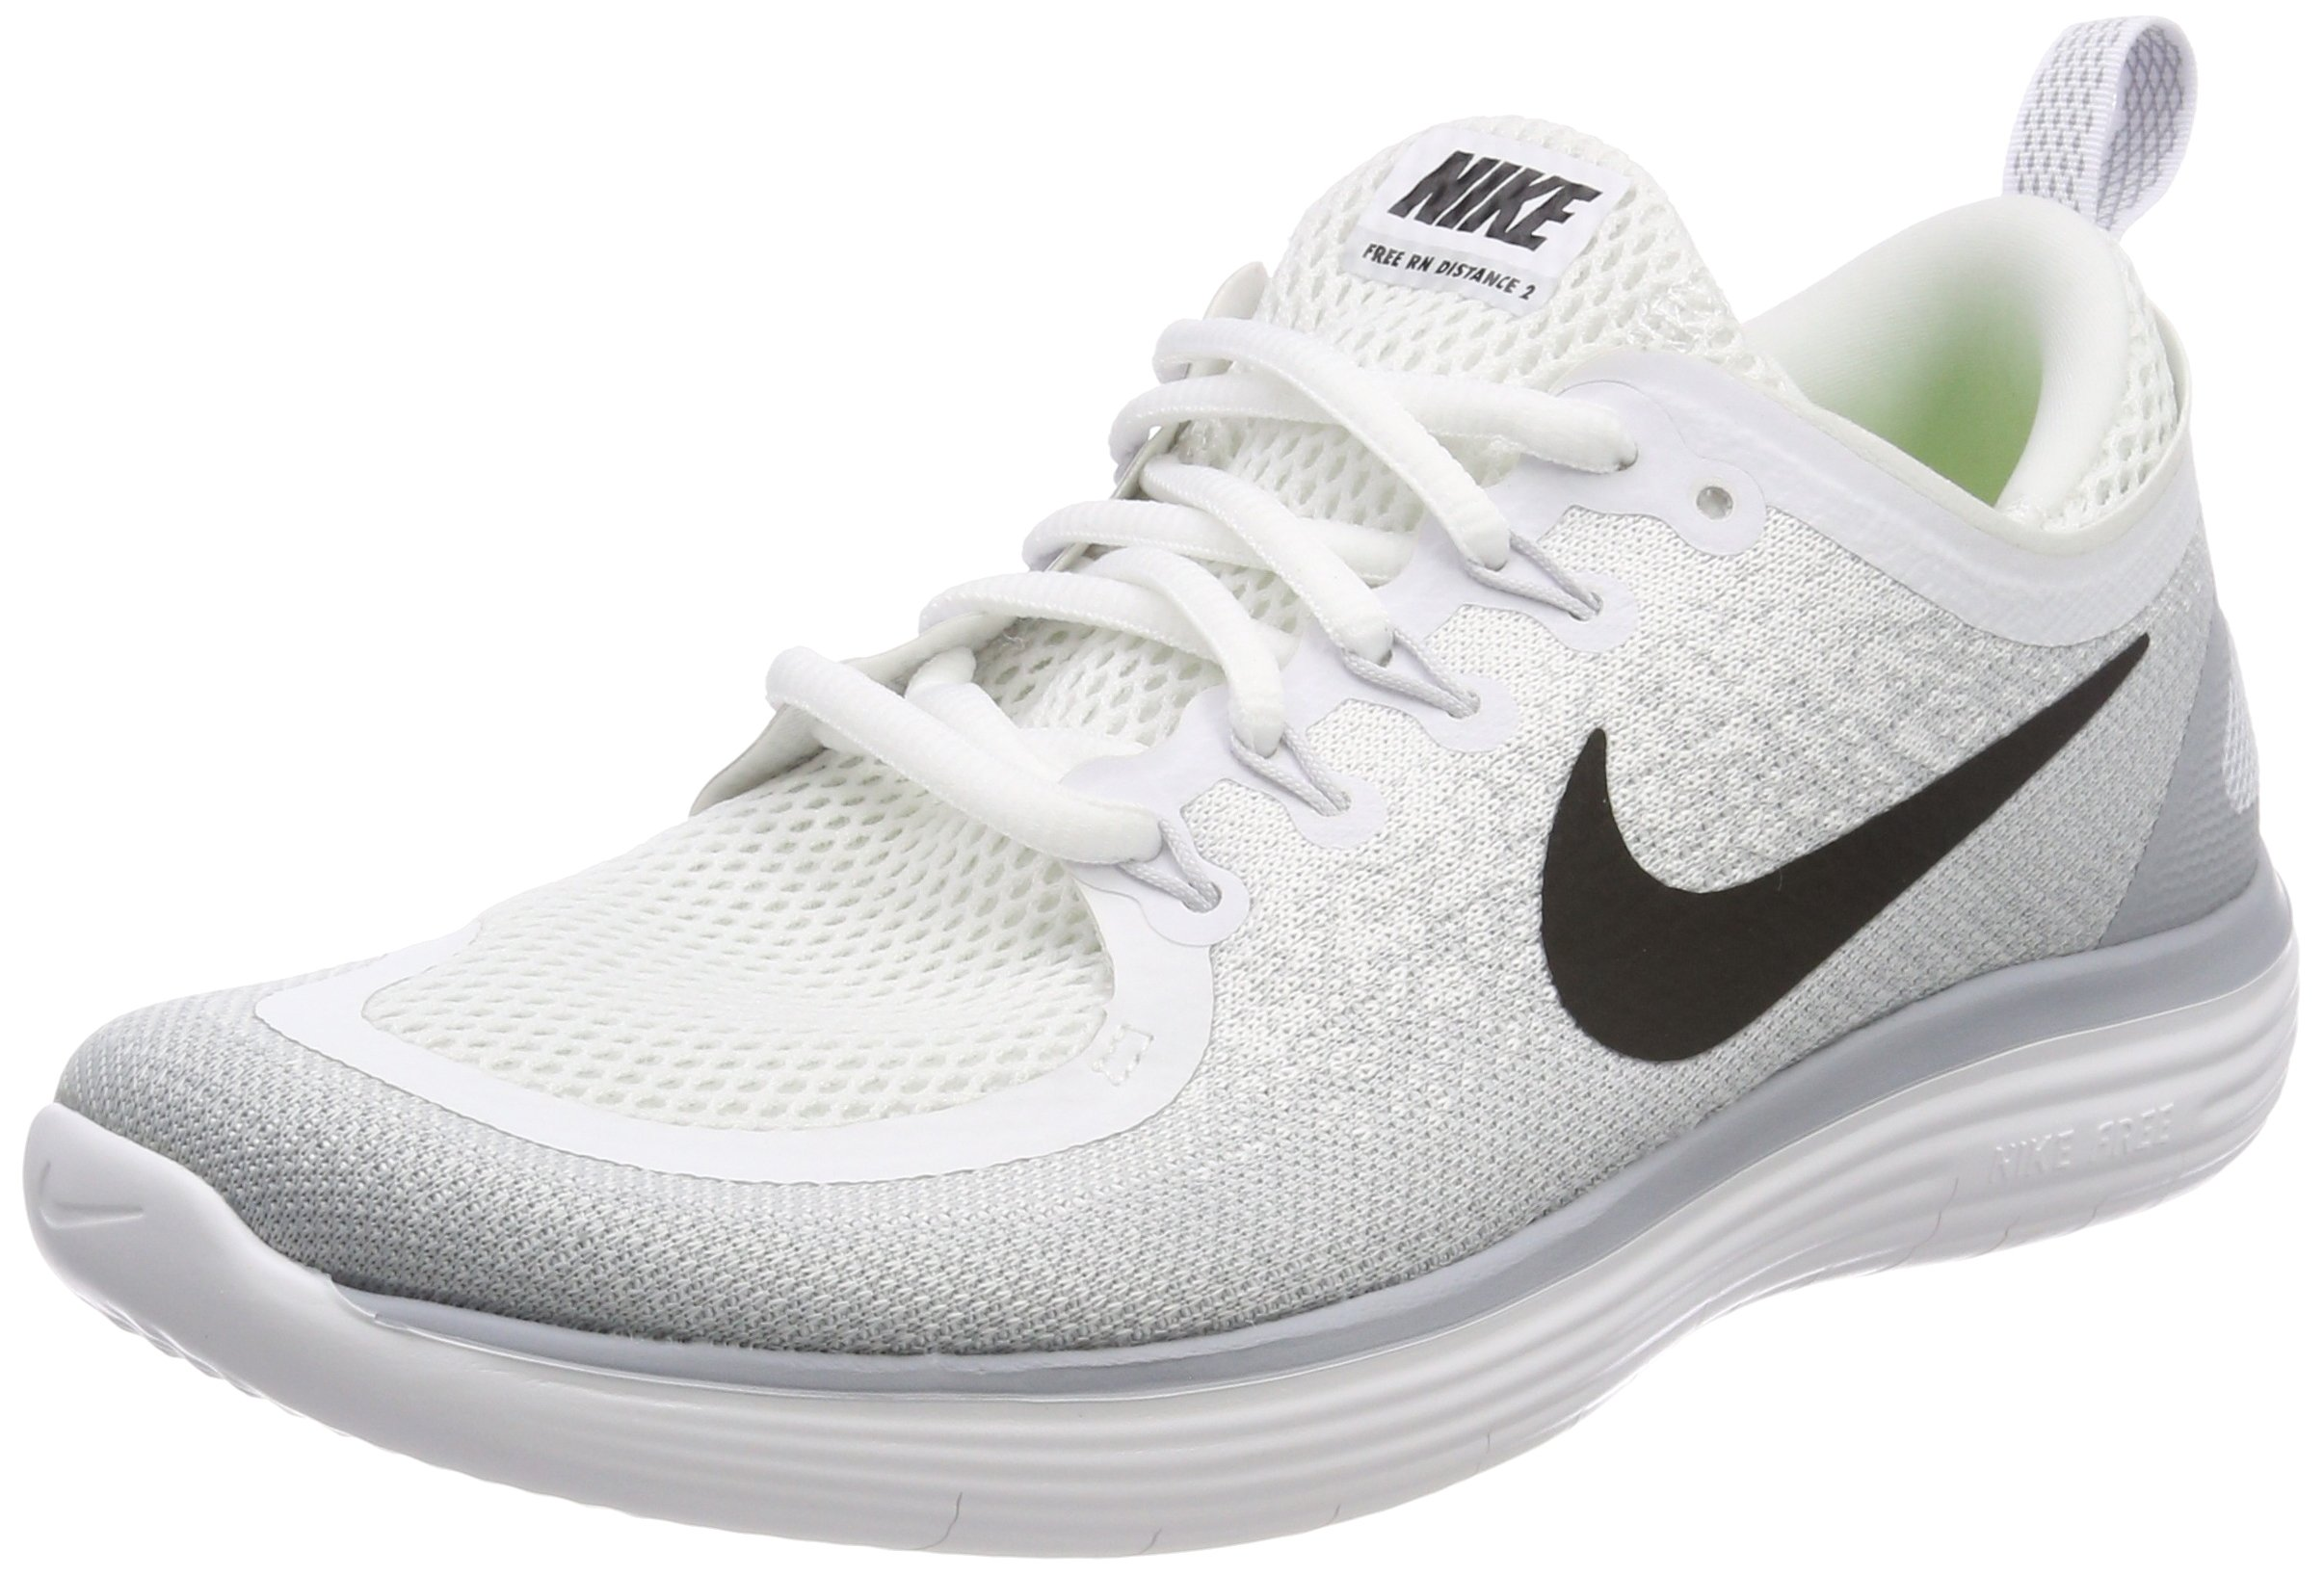 newest a1a1a 9e766 Galleon - Nike Men s Free Run Distance 2 Running Shoes (10 D(M) US,  White Black-Pure Platinum)